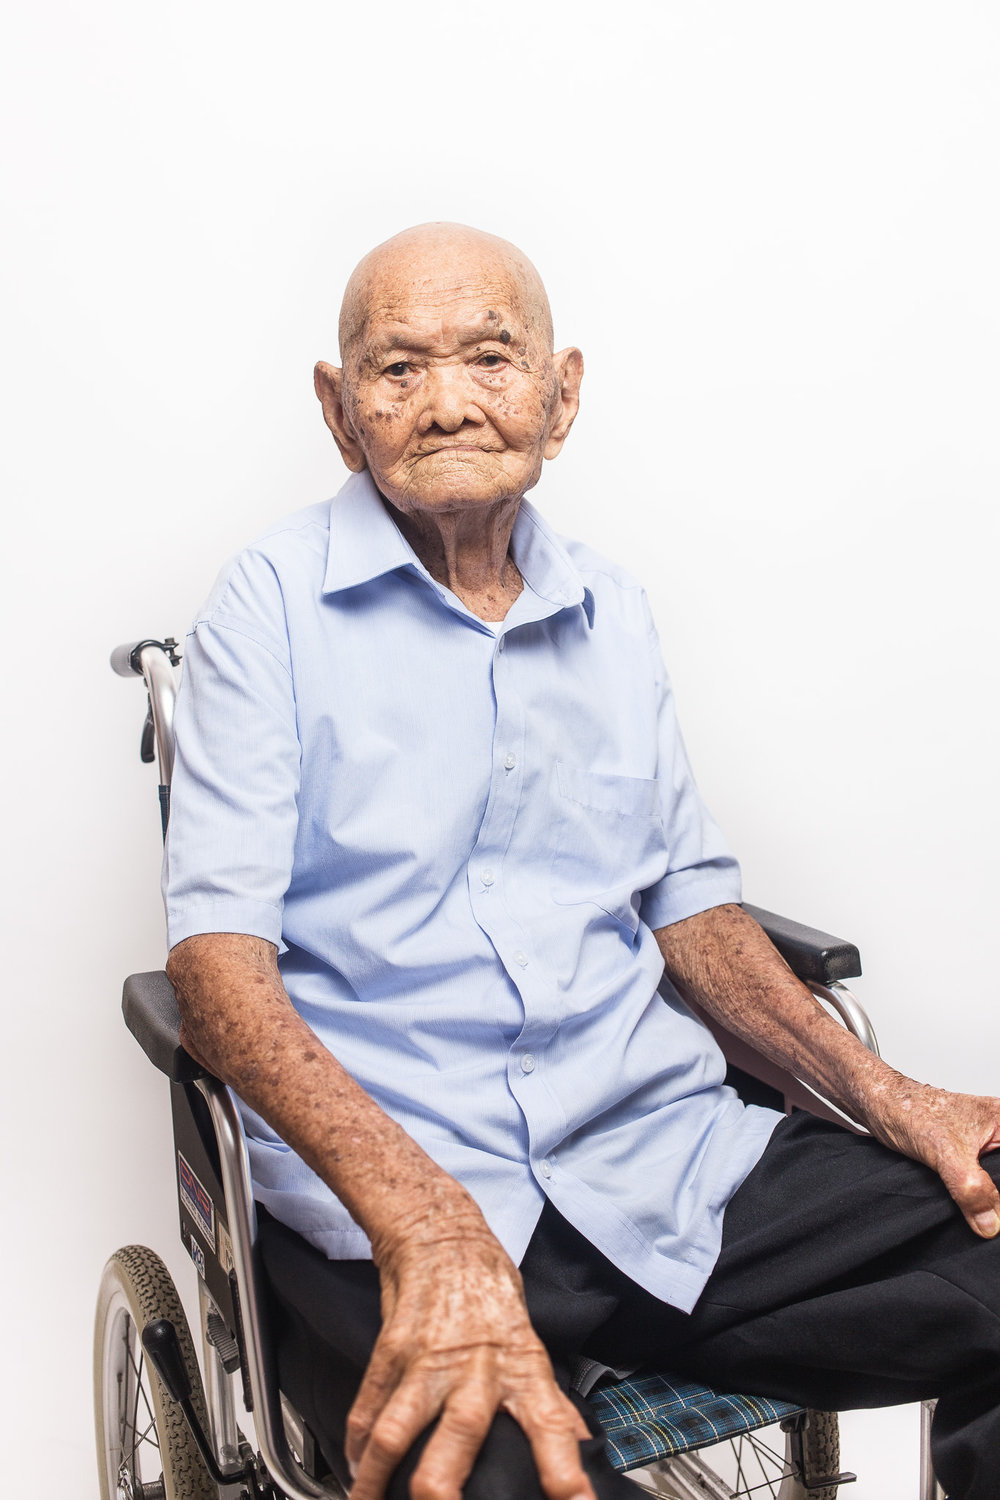 zainal-zainal-studio-centenarians-care-duke-nus-singapore-photographer-18.jpg